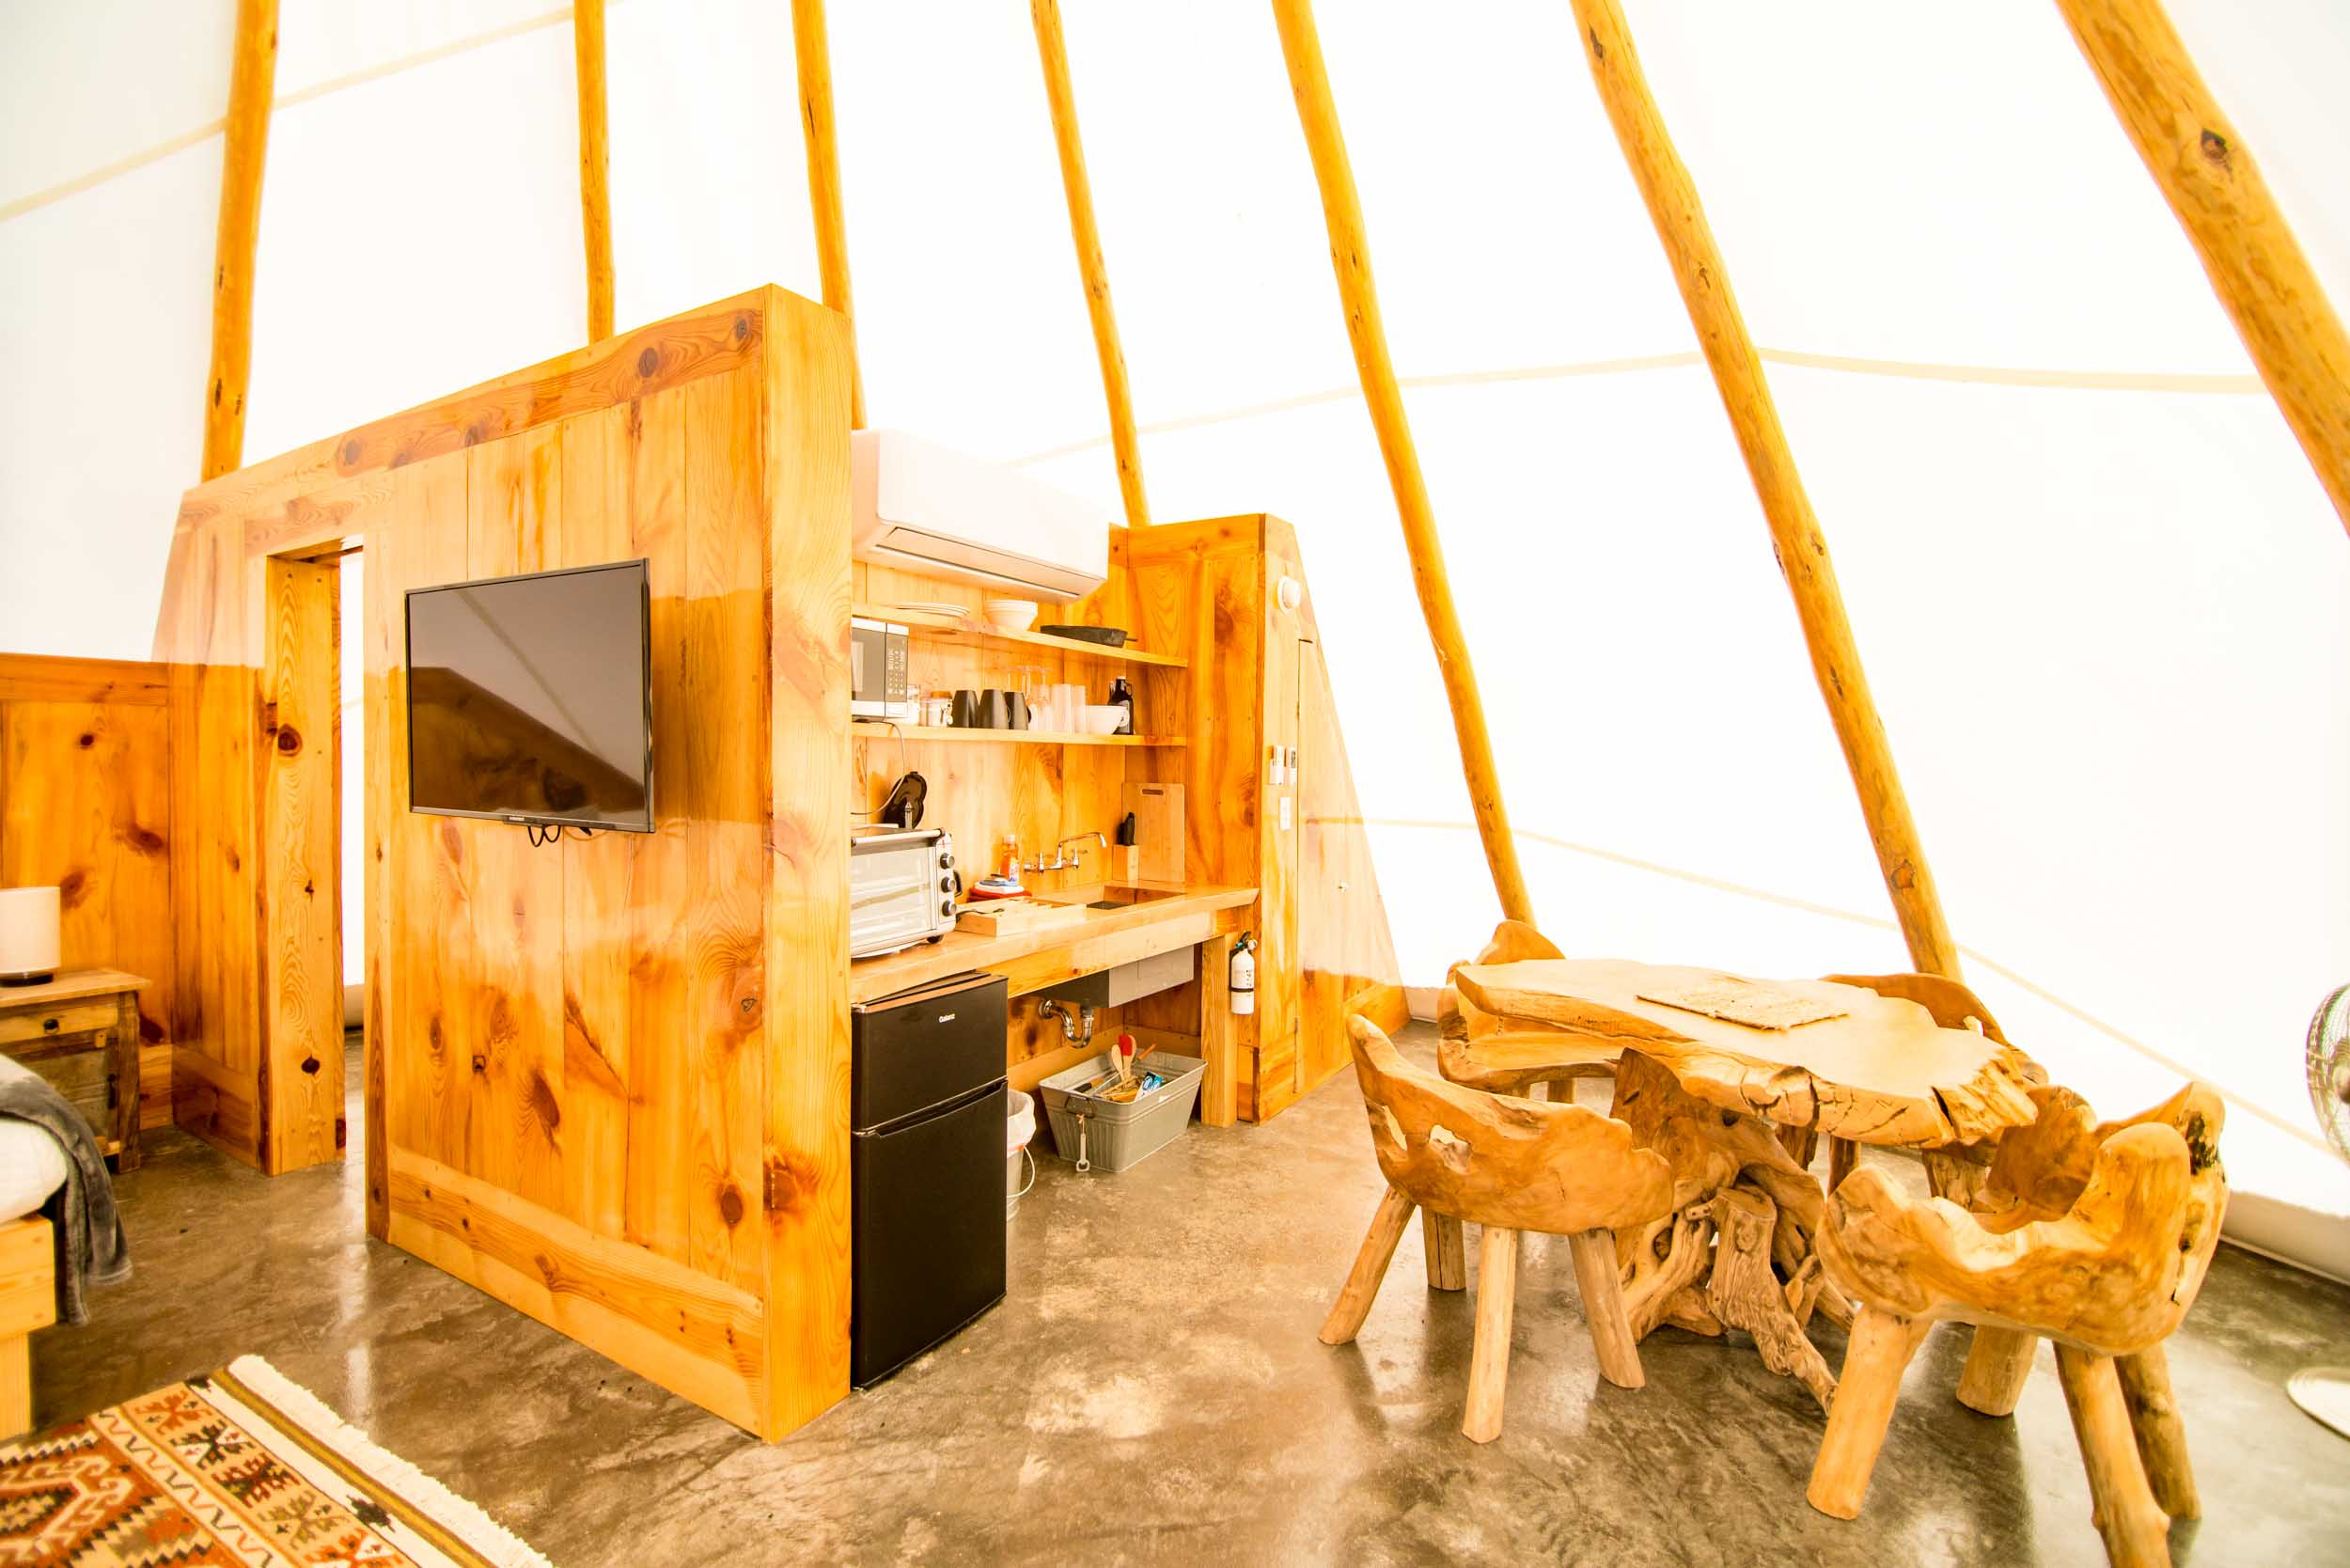 architecture+photographer+tipis+interiors+photography+airbnb+photo-8.jpg